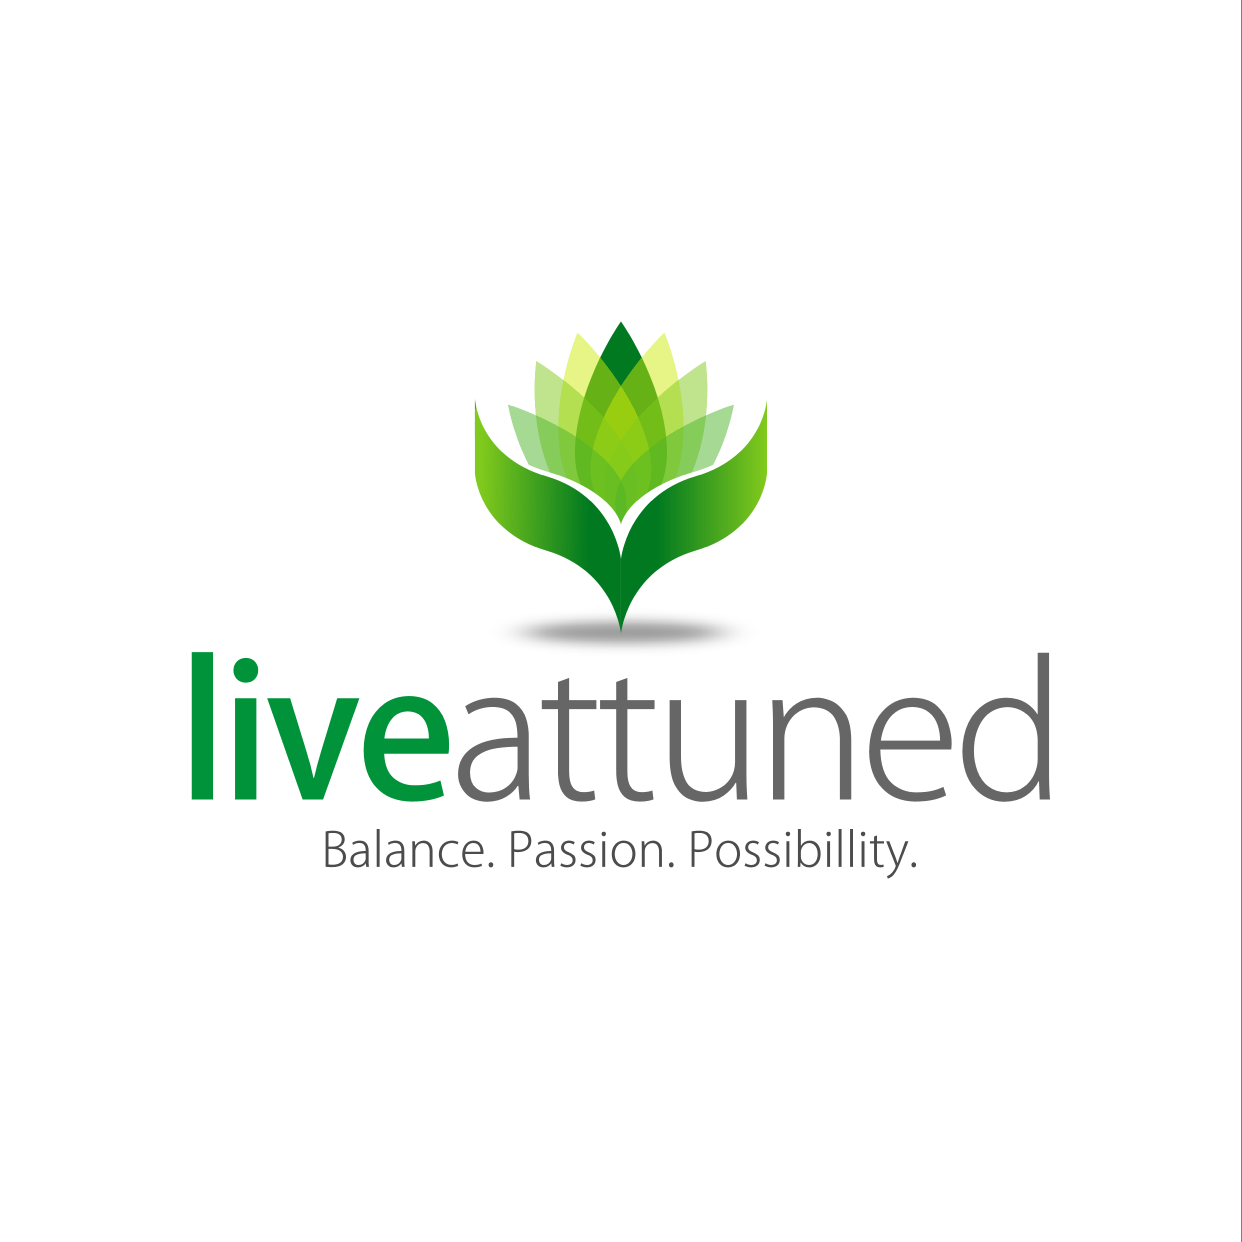 Logo Design by ENNO77 - Entry No. 147 in the Logo Design Contest New Logo Design for Live Attuned.